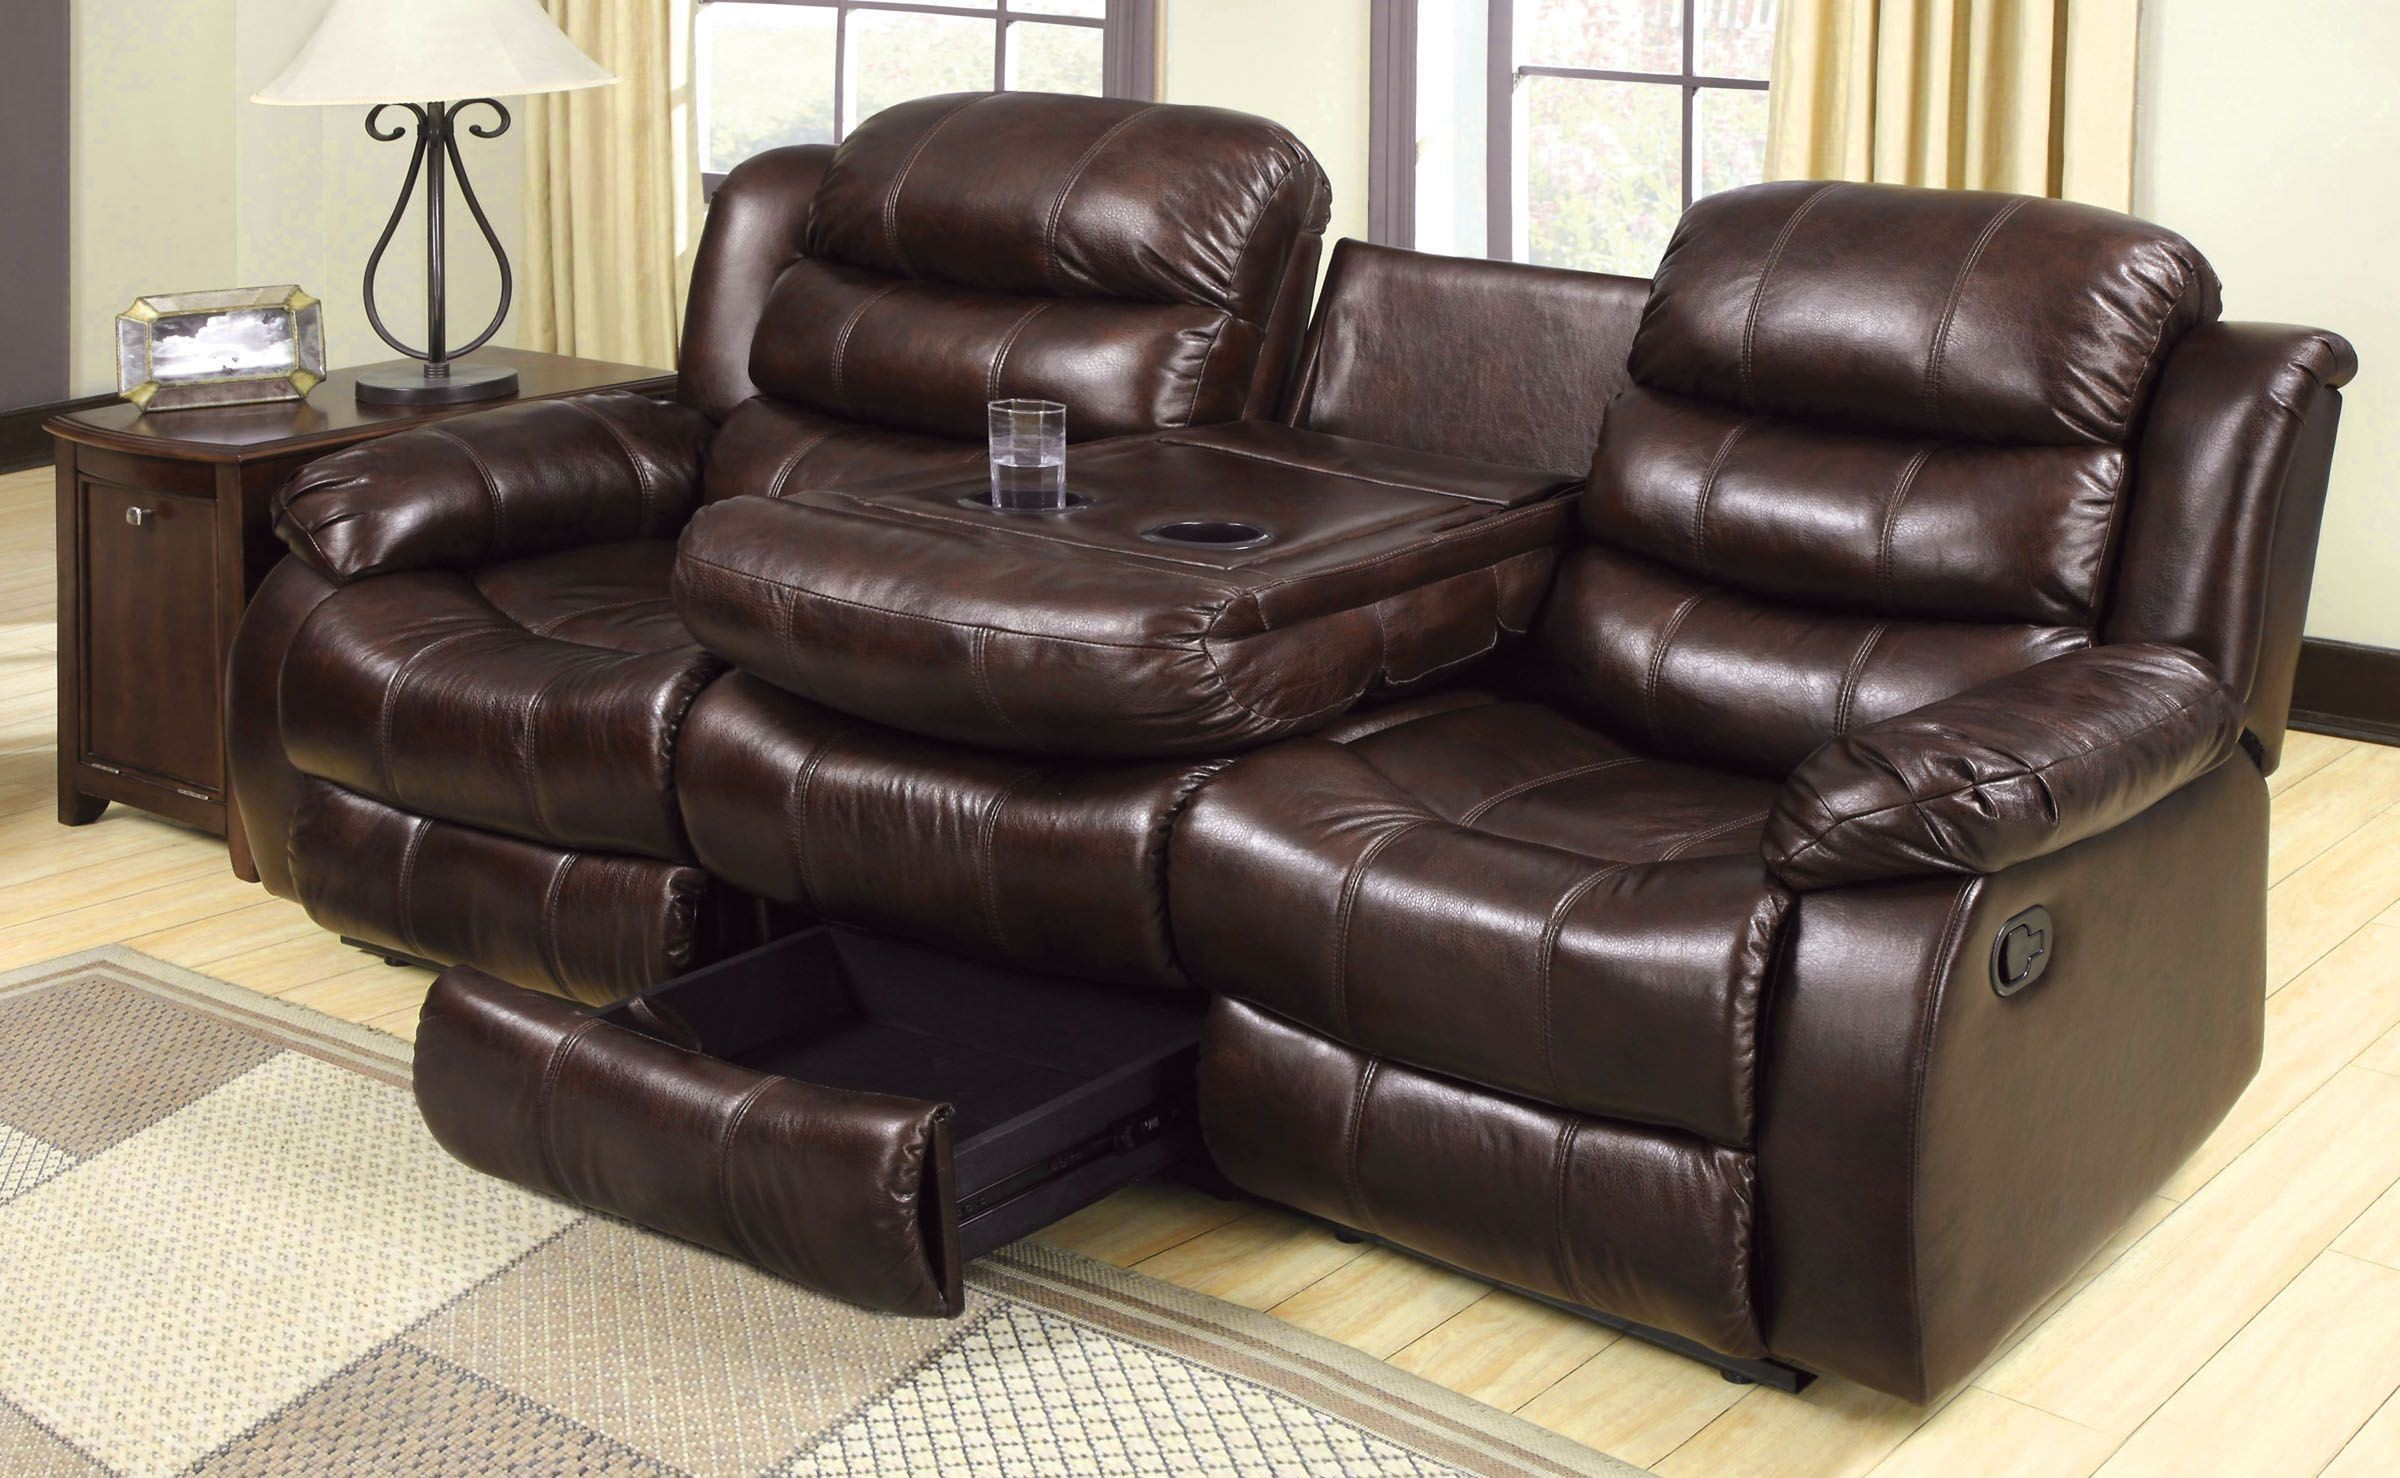 Berkshire rustic brown reclining sofa with center console from furniture of america cm6551 s Reclining loveseat with center console